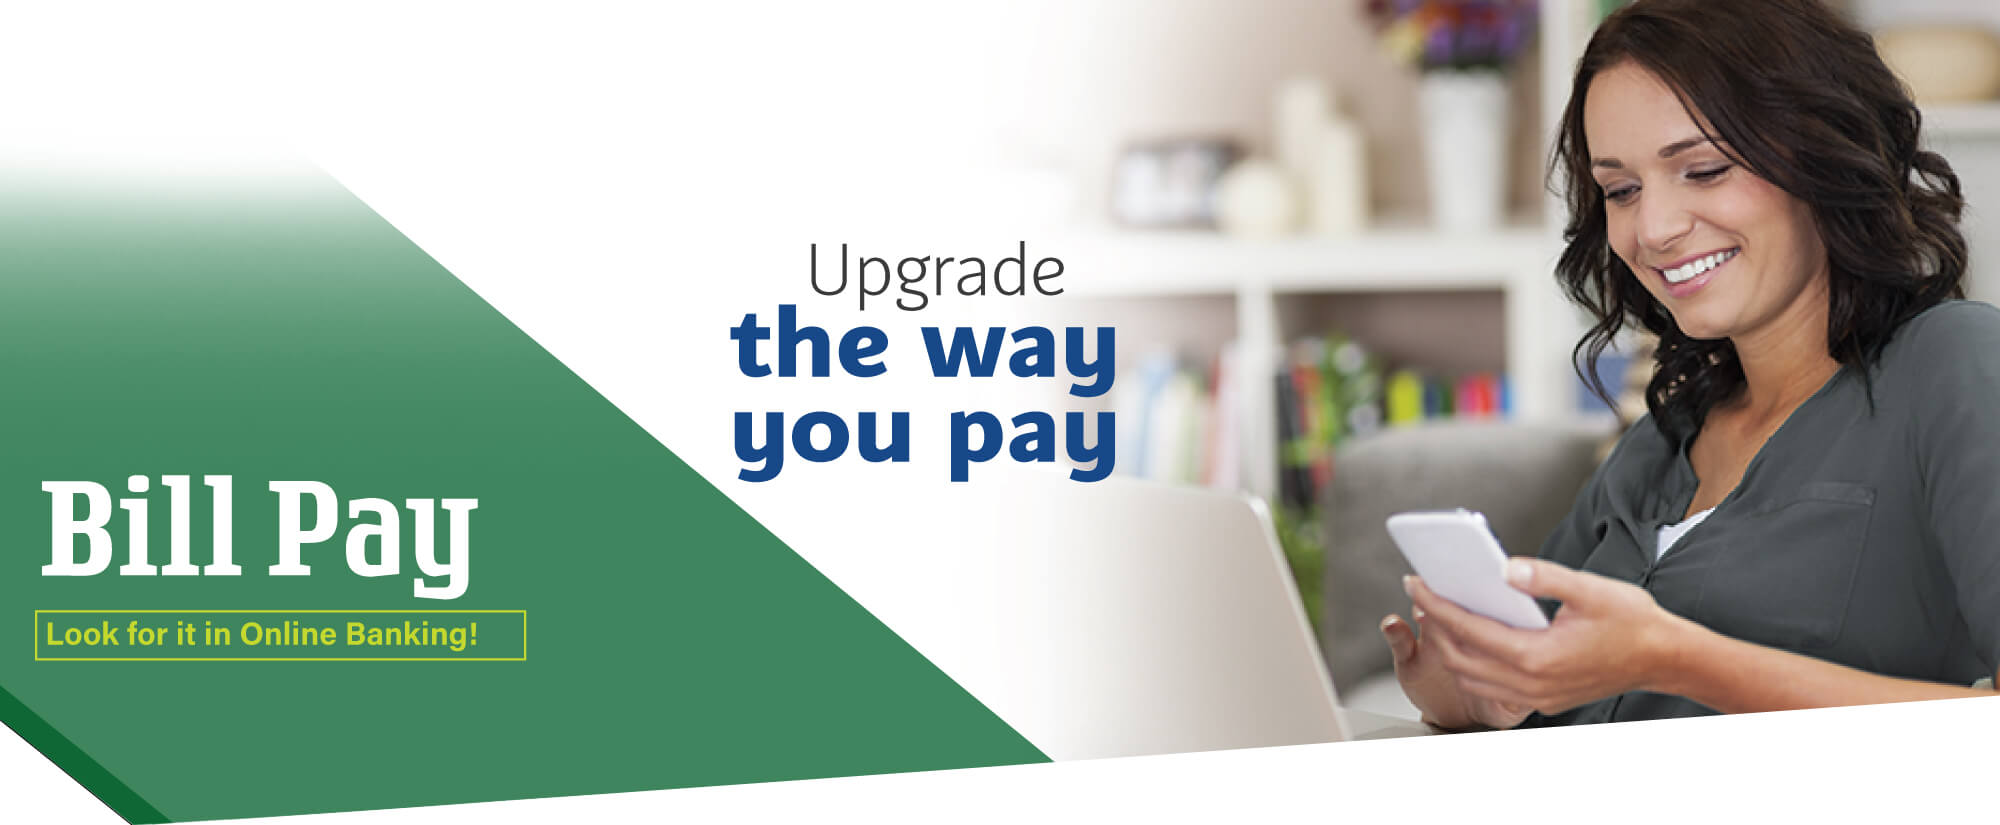 Pay your bills online with GreenLeaf Bill Pay.